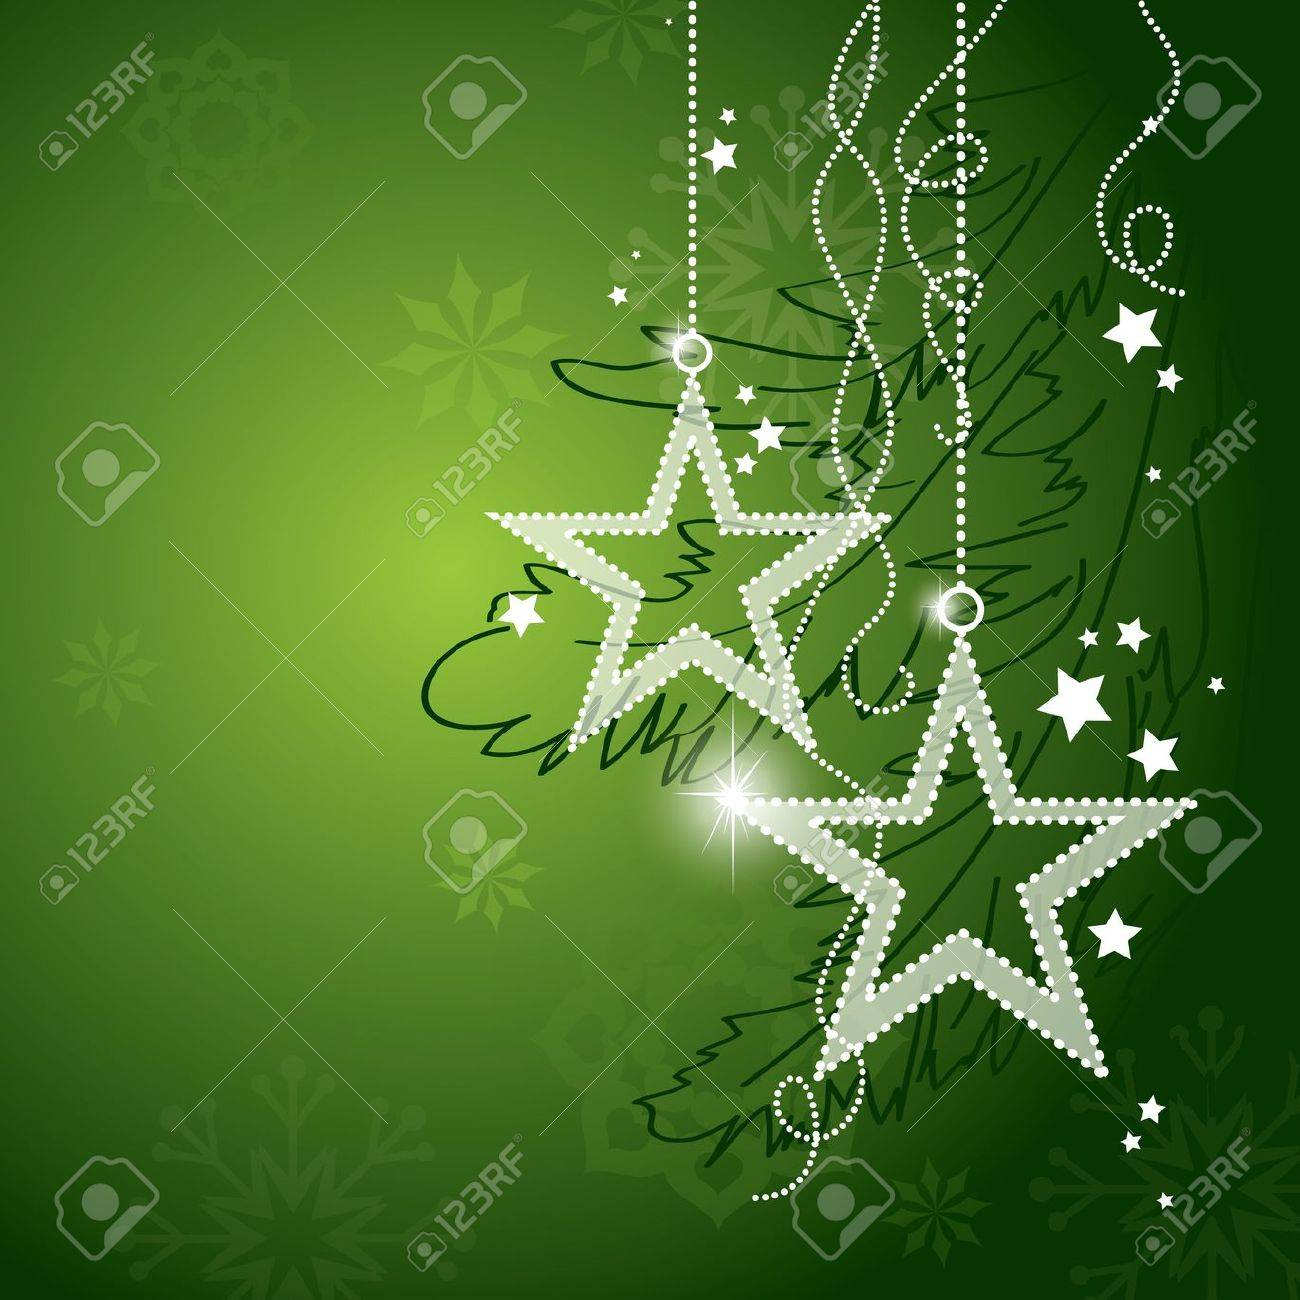 Christmas Background  Eps10 Format Stock Vector - 15392518